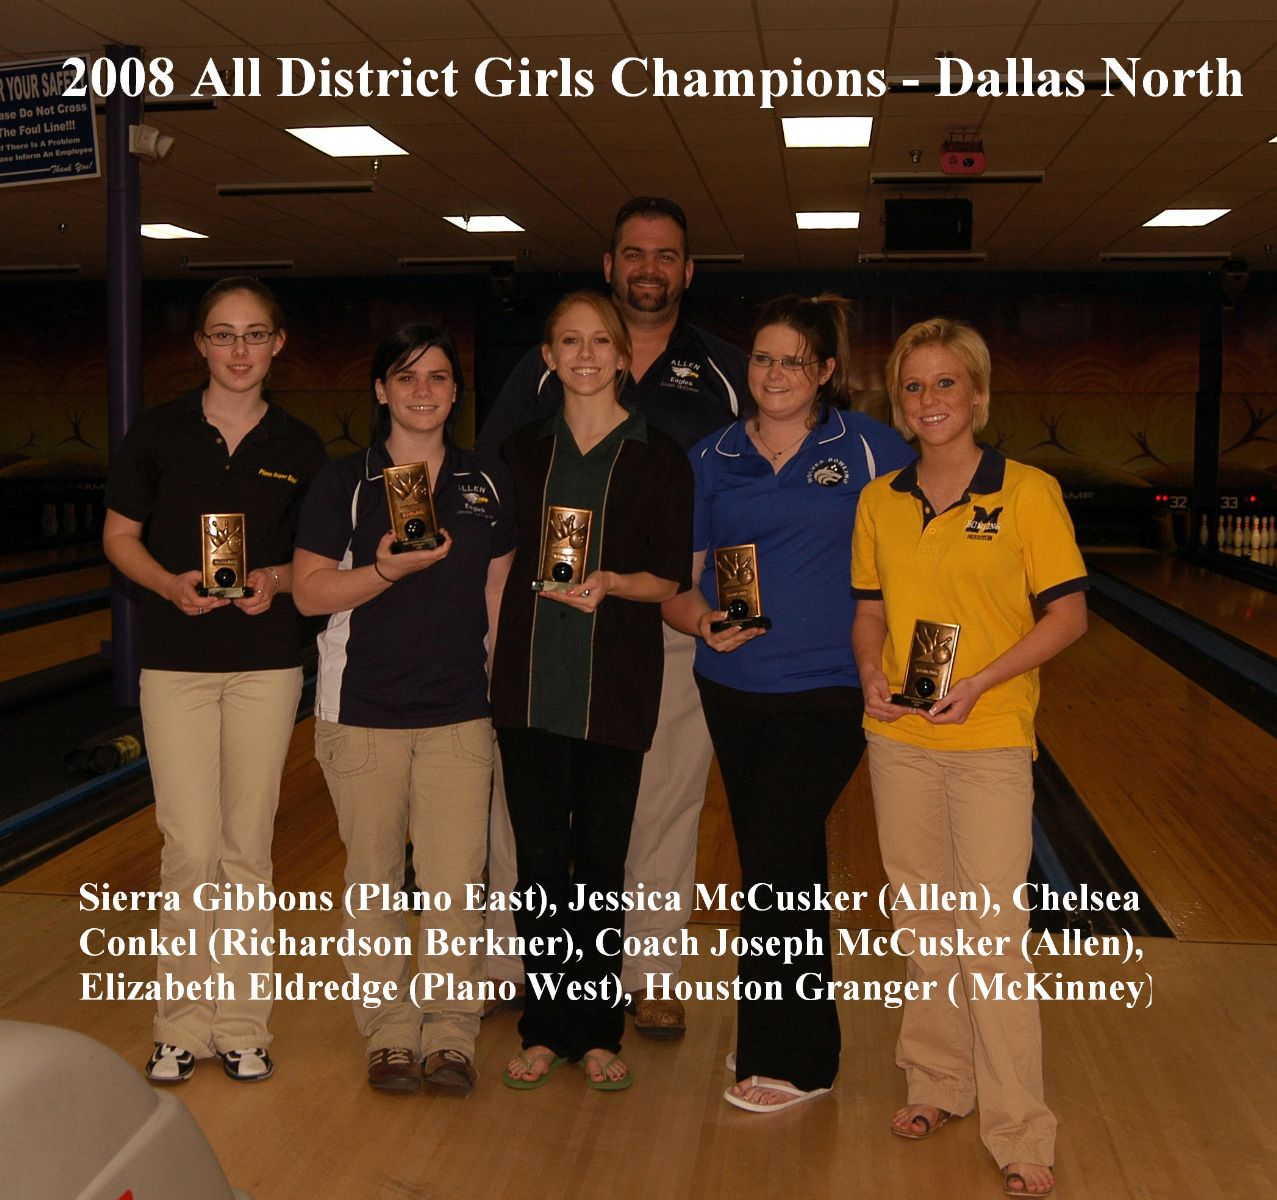 2008 All District Girls